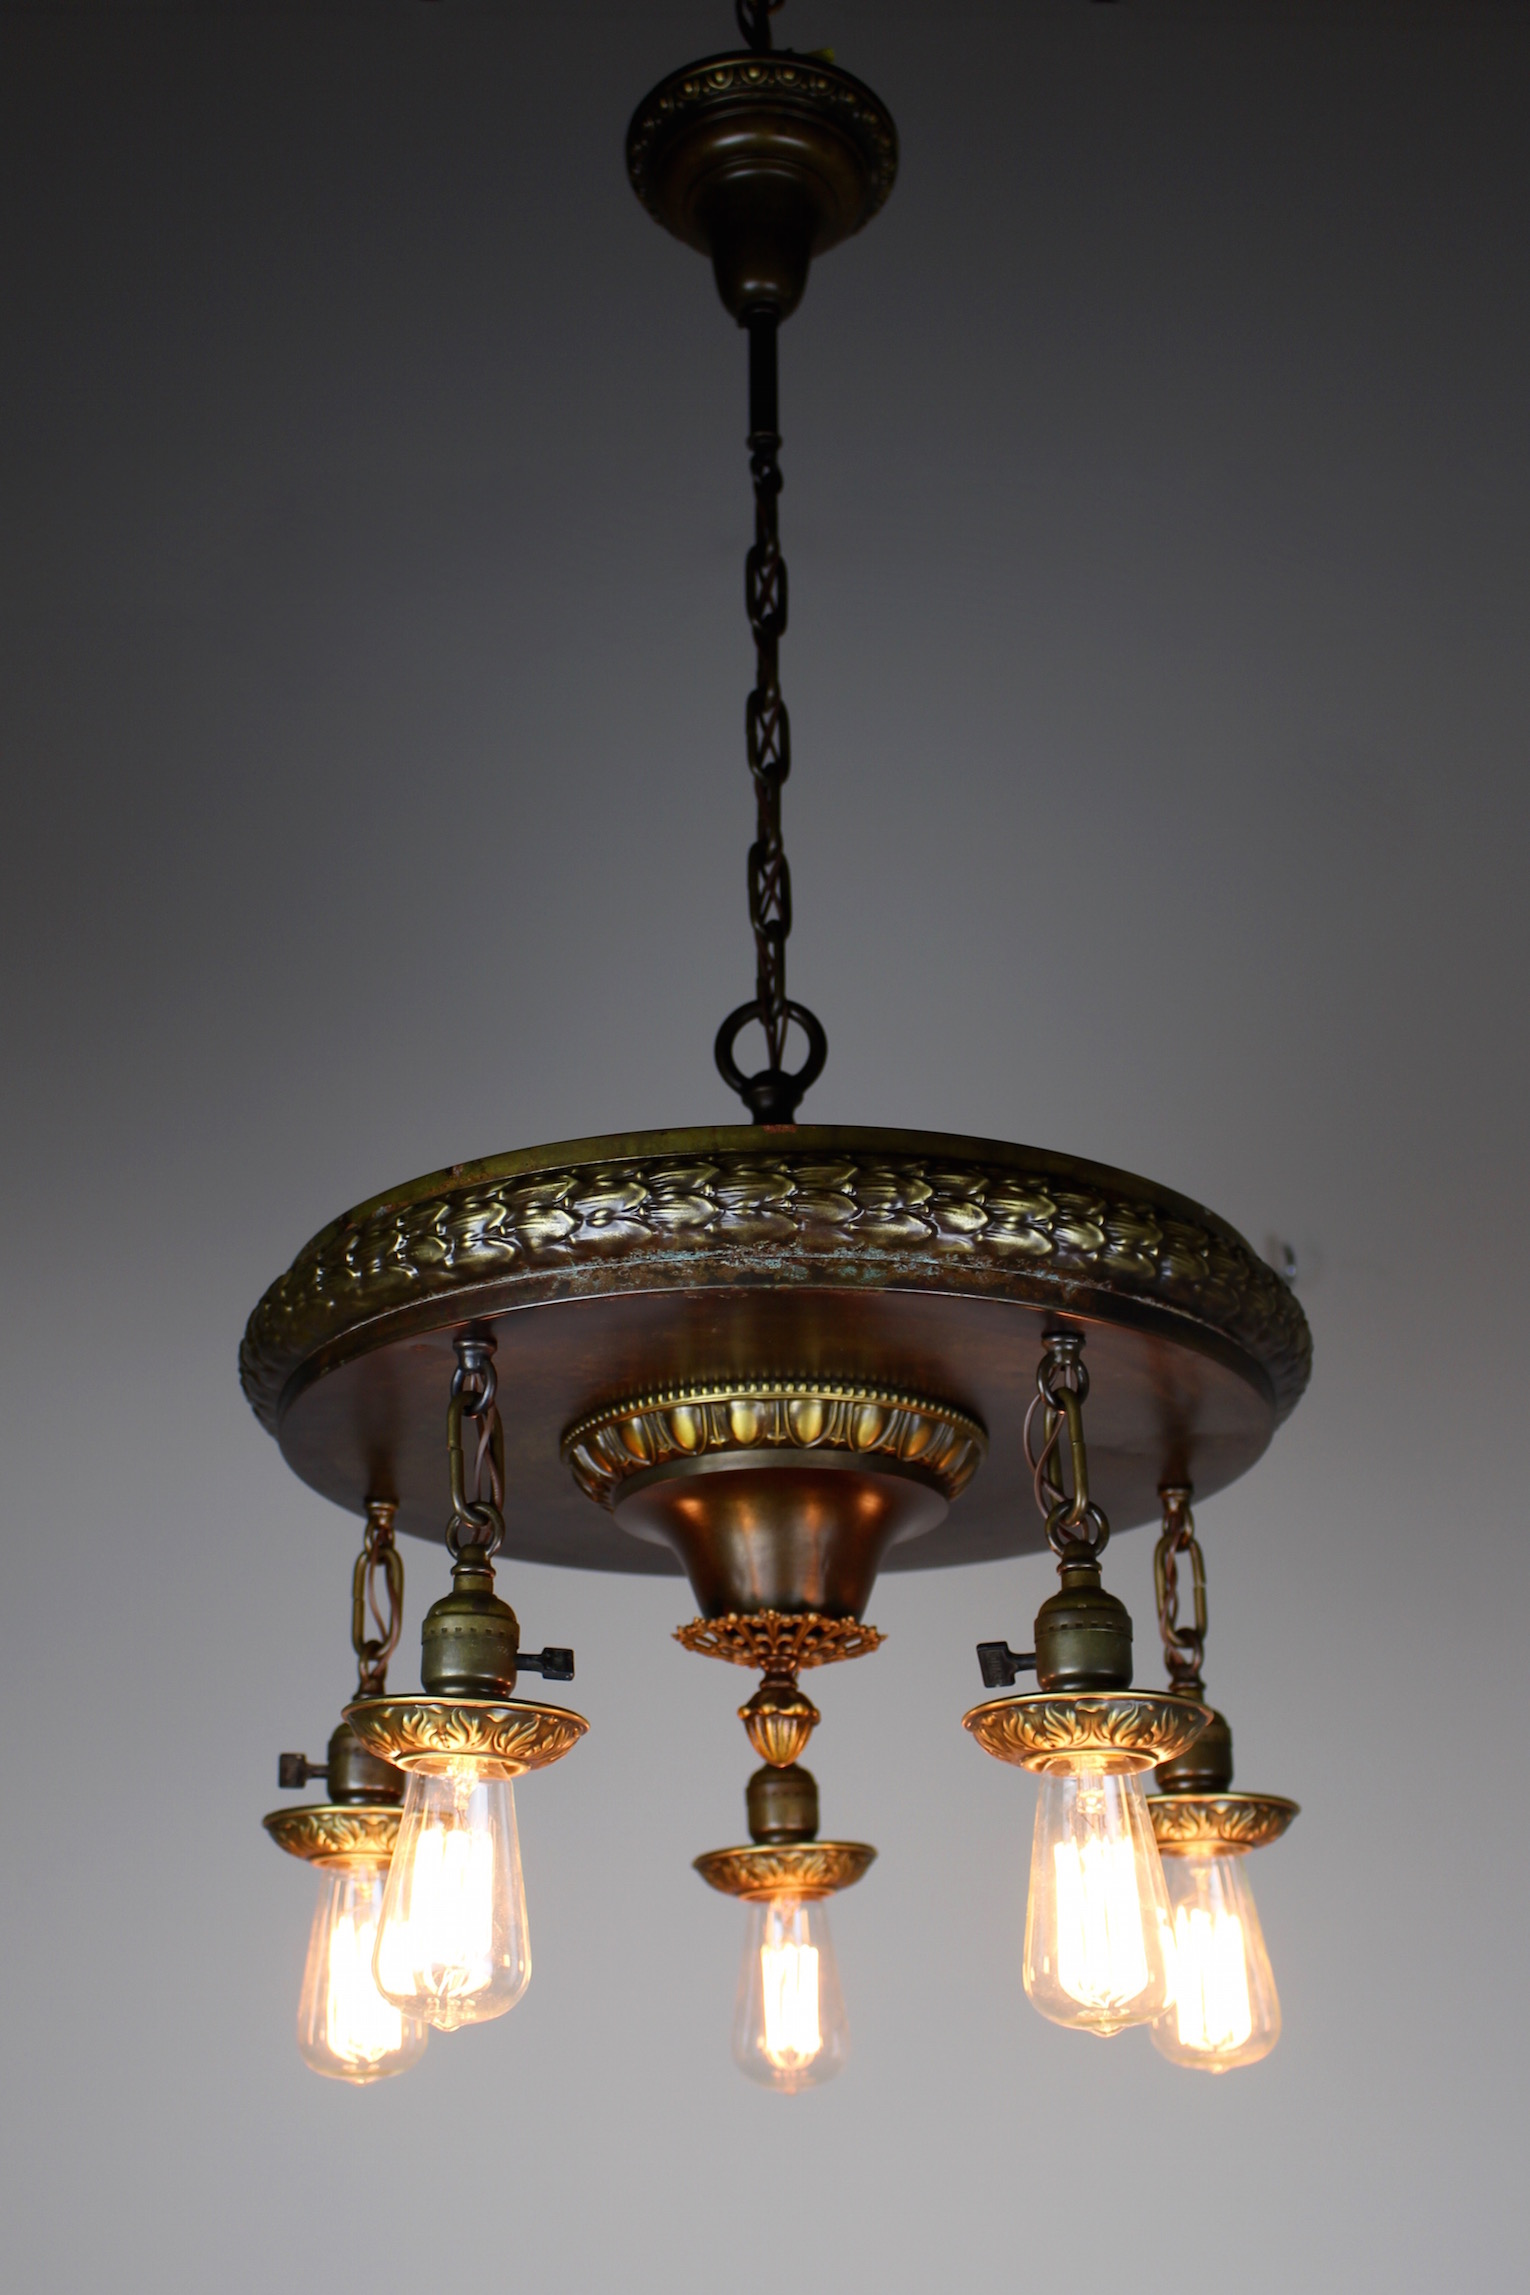 1920s FiveLight Neoclassical Revival Dining Room Fixture